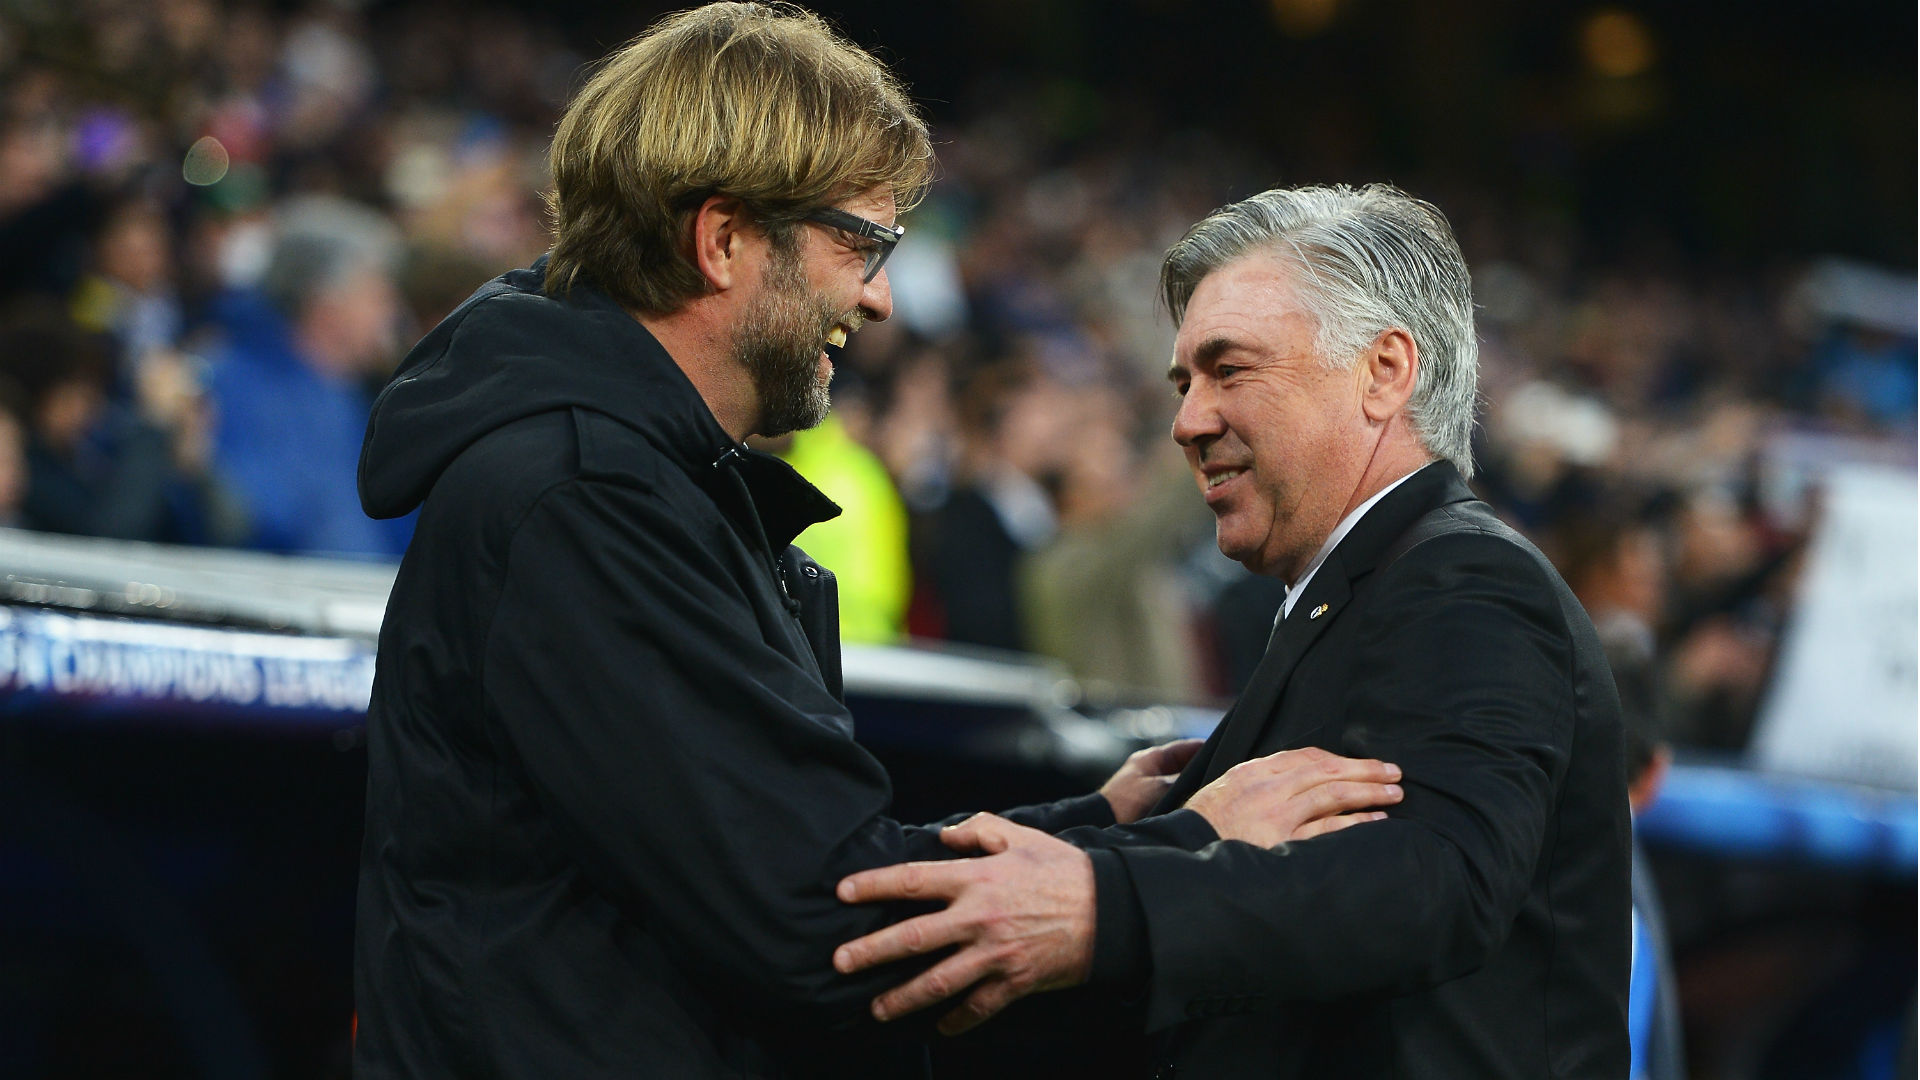 Bayern Munich's Carlo Ancelotti sacked after team's deteriorating form